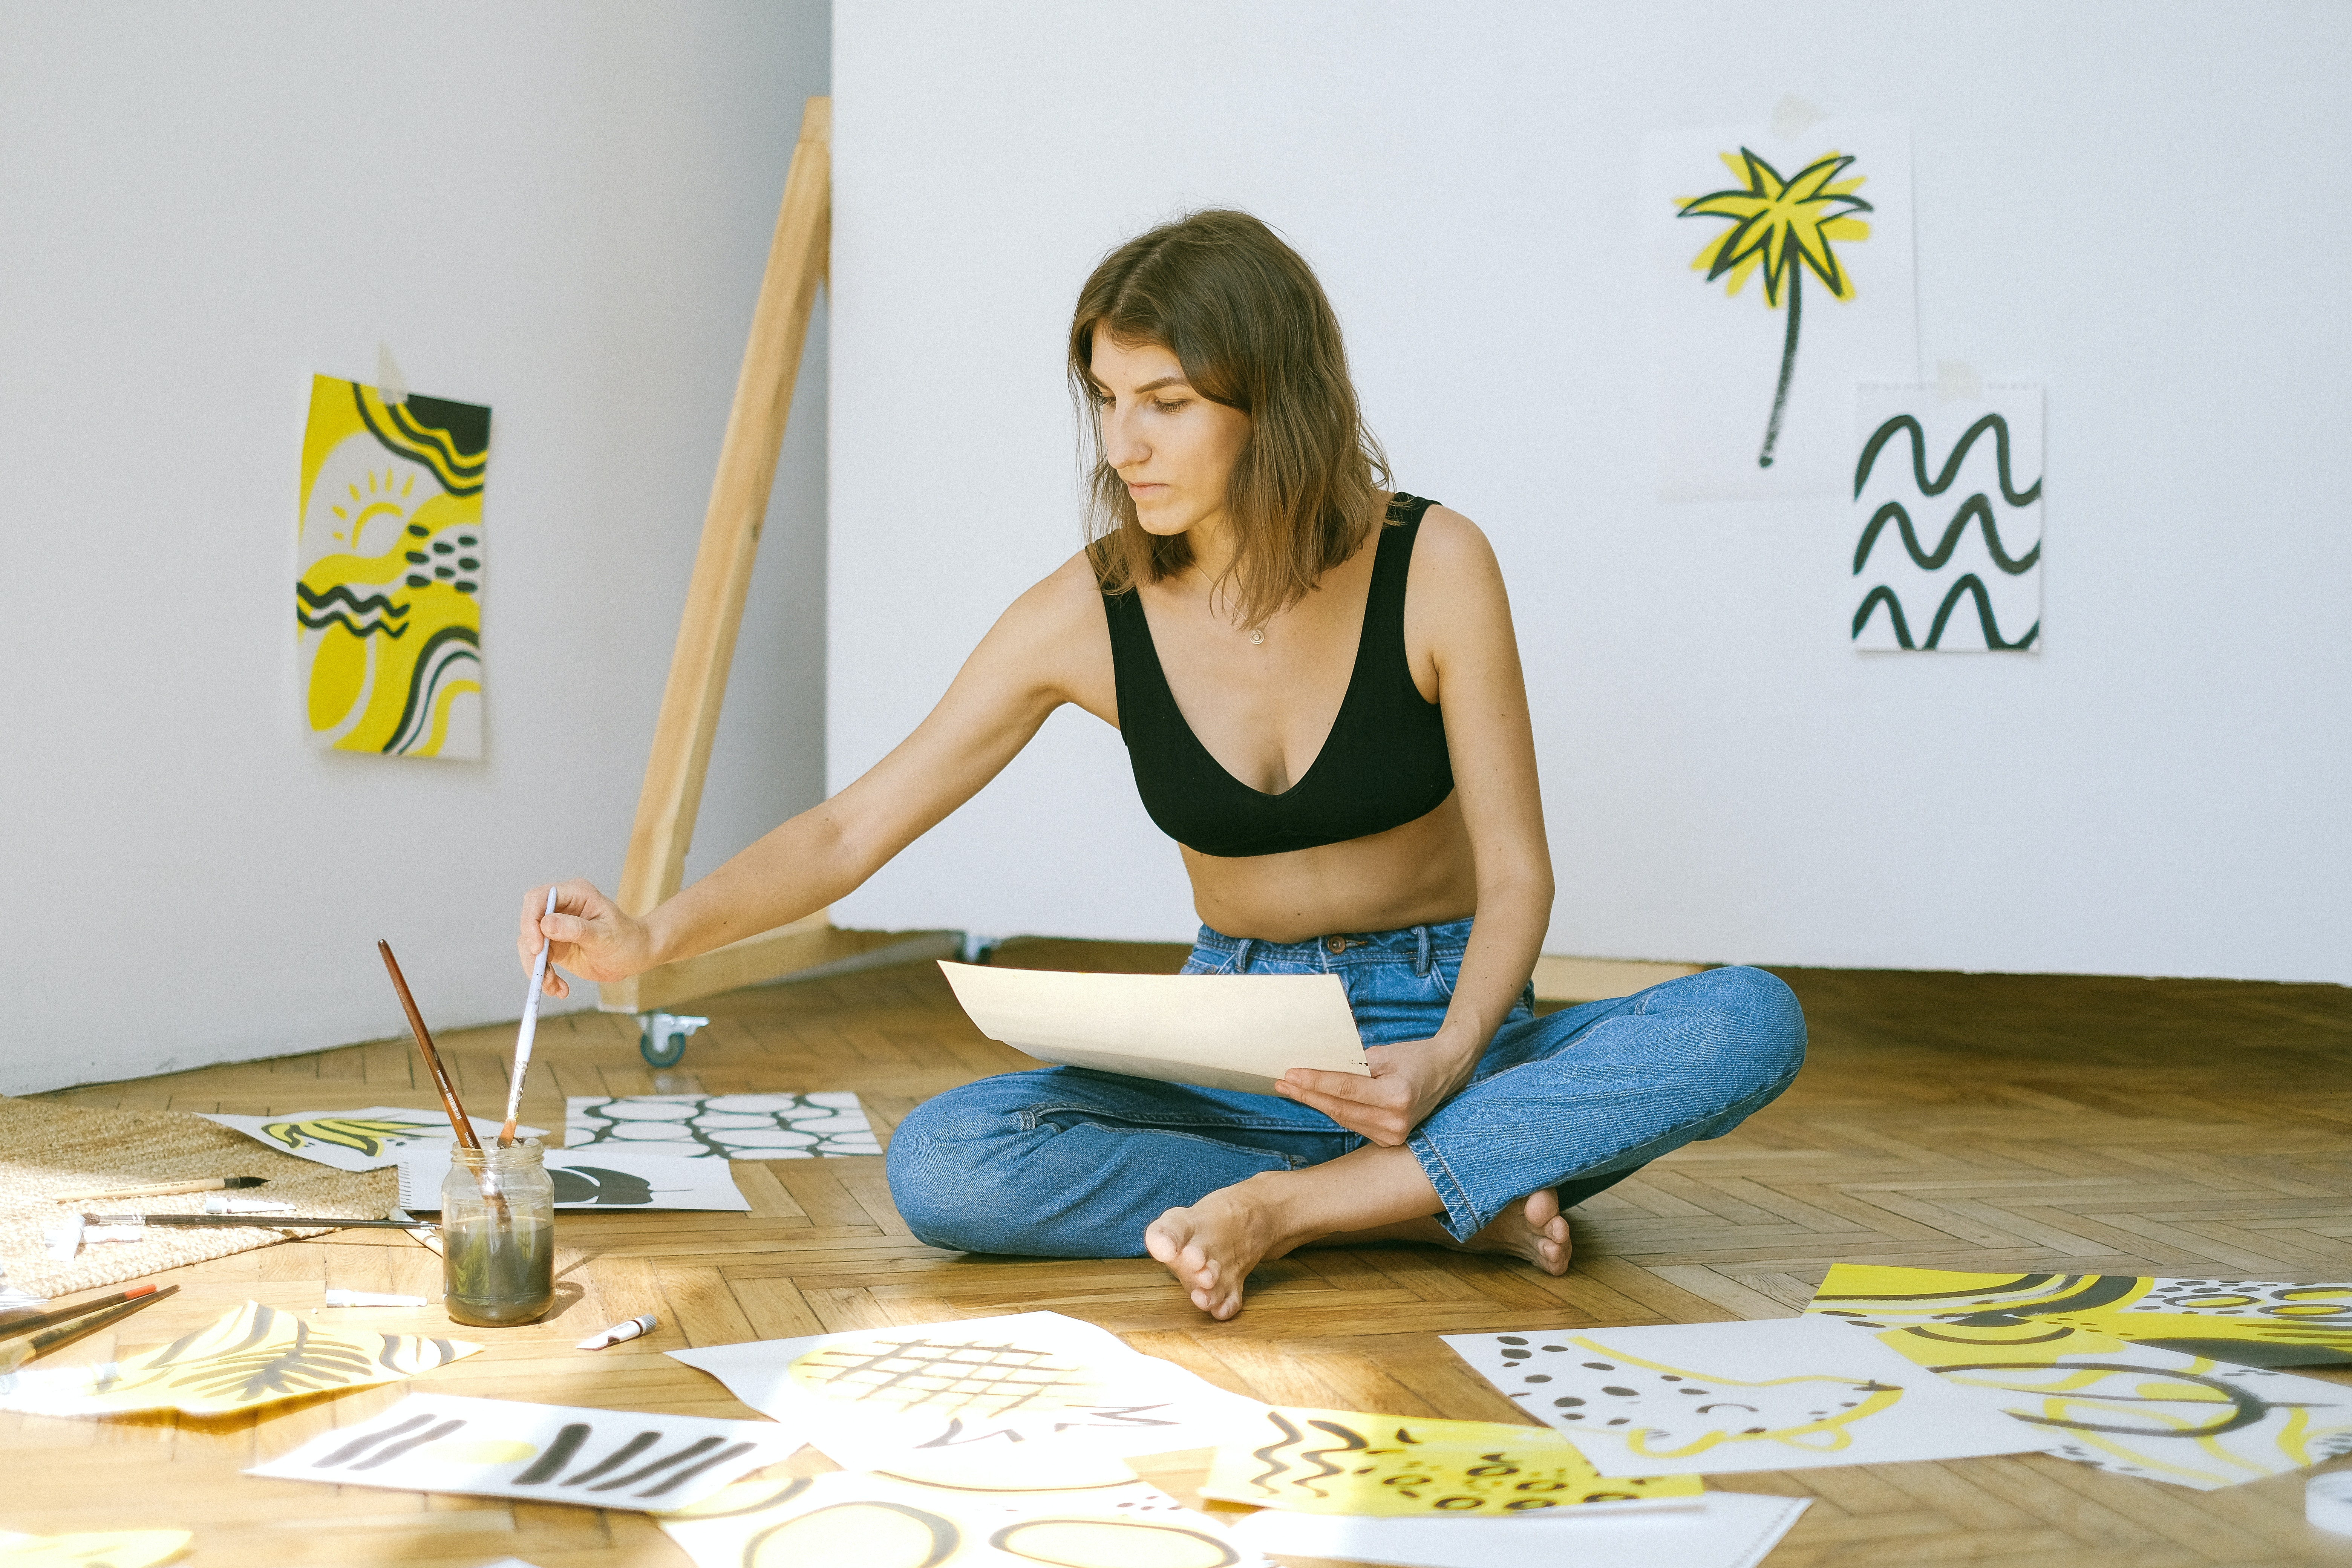 photo-of-woman-sitting-on-floor-while-painting-4483167